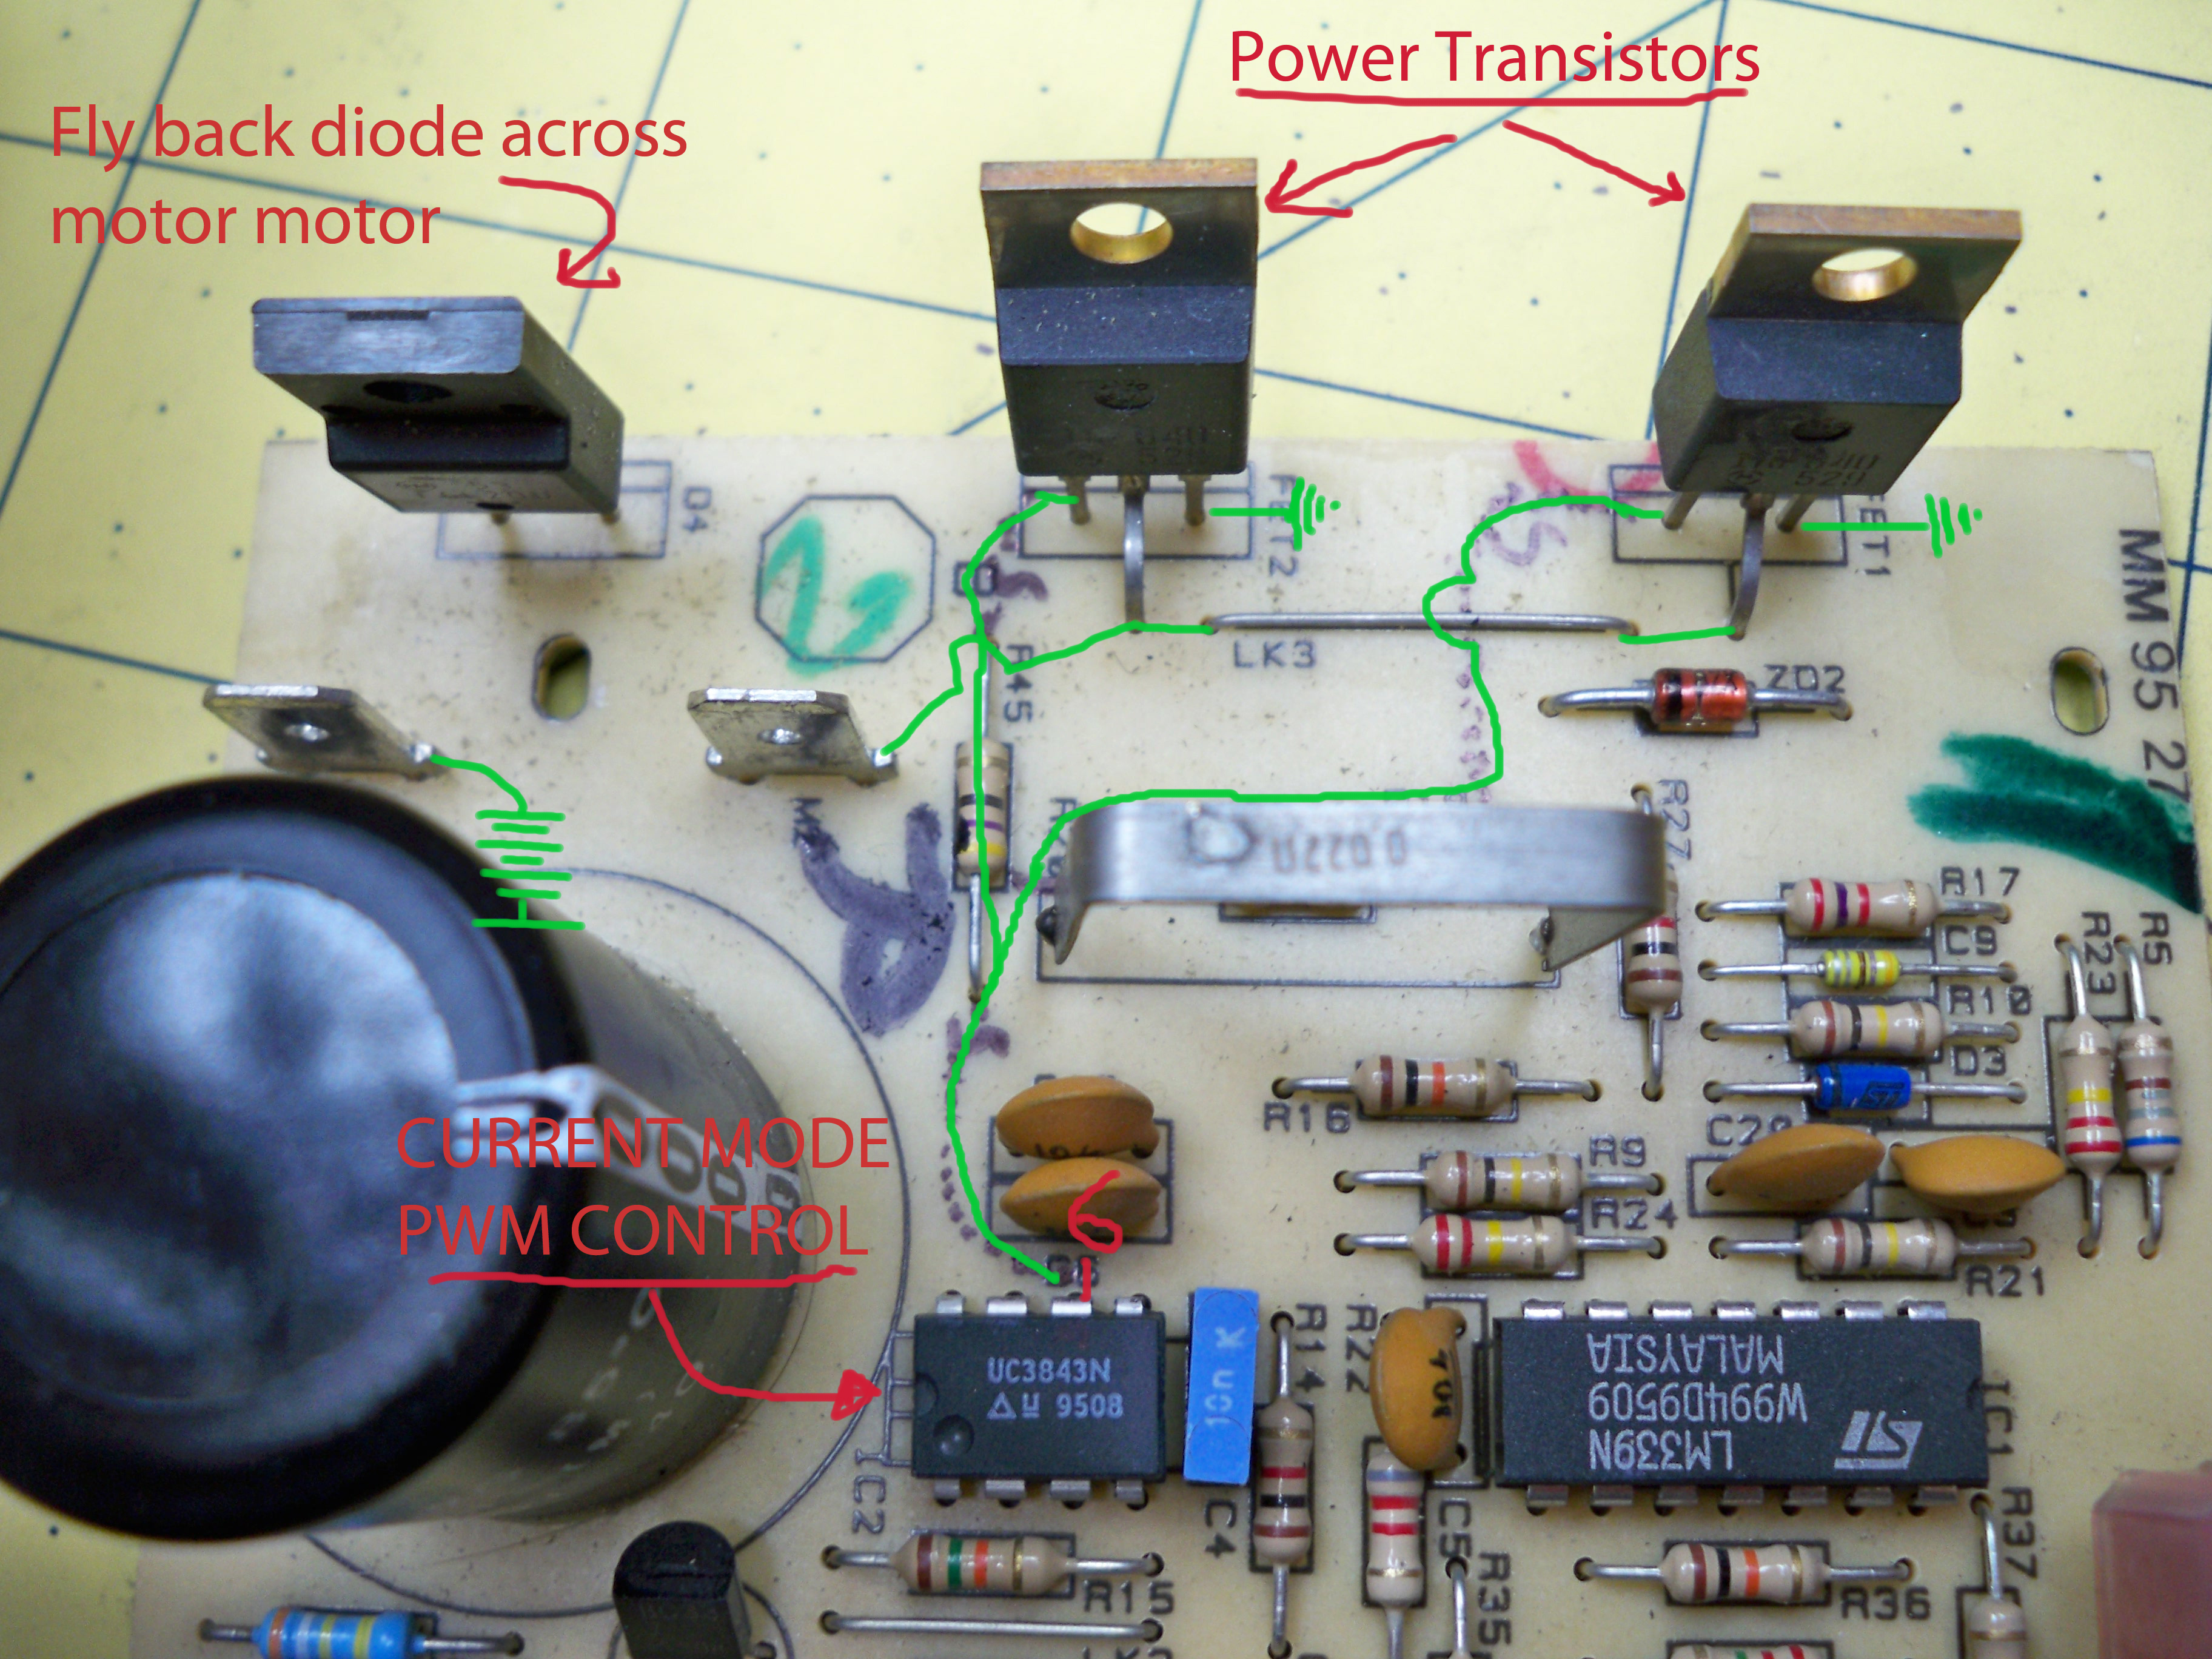 wiring diagram 1994 oldsmobile achieva s html with 2008 Audi Tt Low Switch Circuit Repair Method on 1996 Oldsmobile Achieva Evap Canister Solenoid Replacement in addition 2001 Mazda Mpv Cool Start Manual furthermore 59n4a Lincoln Cartier L Need Recharge Ac 134 A How further 2008 Audi Tt Low Switch Circuit Repair Method in addition 1984 Subaru Brat Timing Chain Pdf.